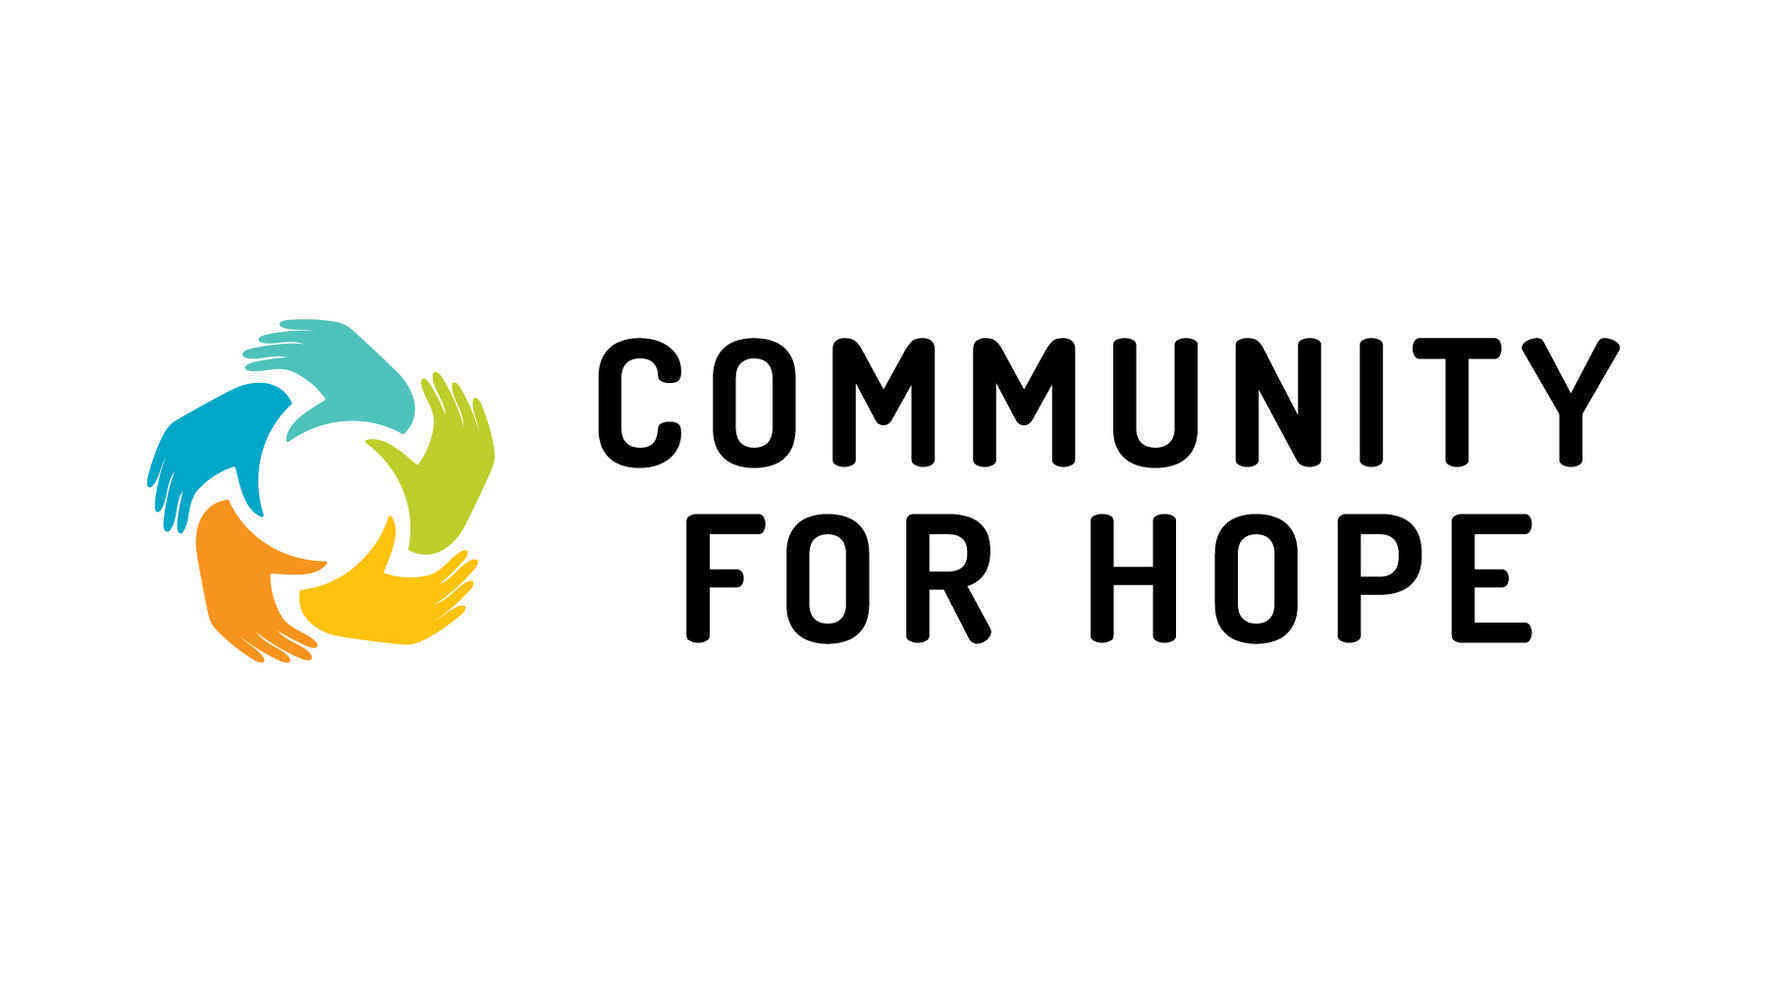 Create HOPE by donating to end suicide where you live! image